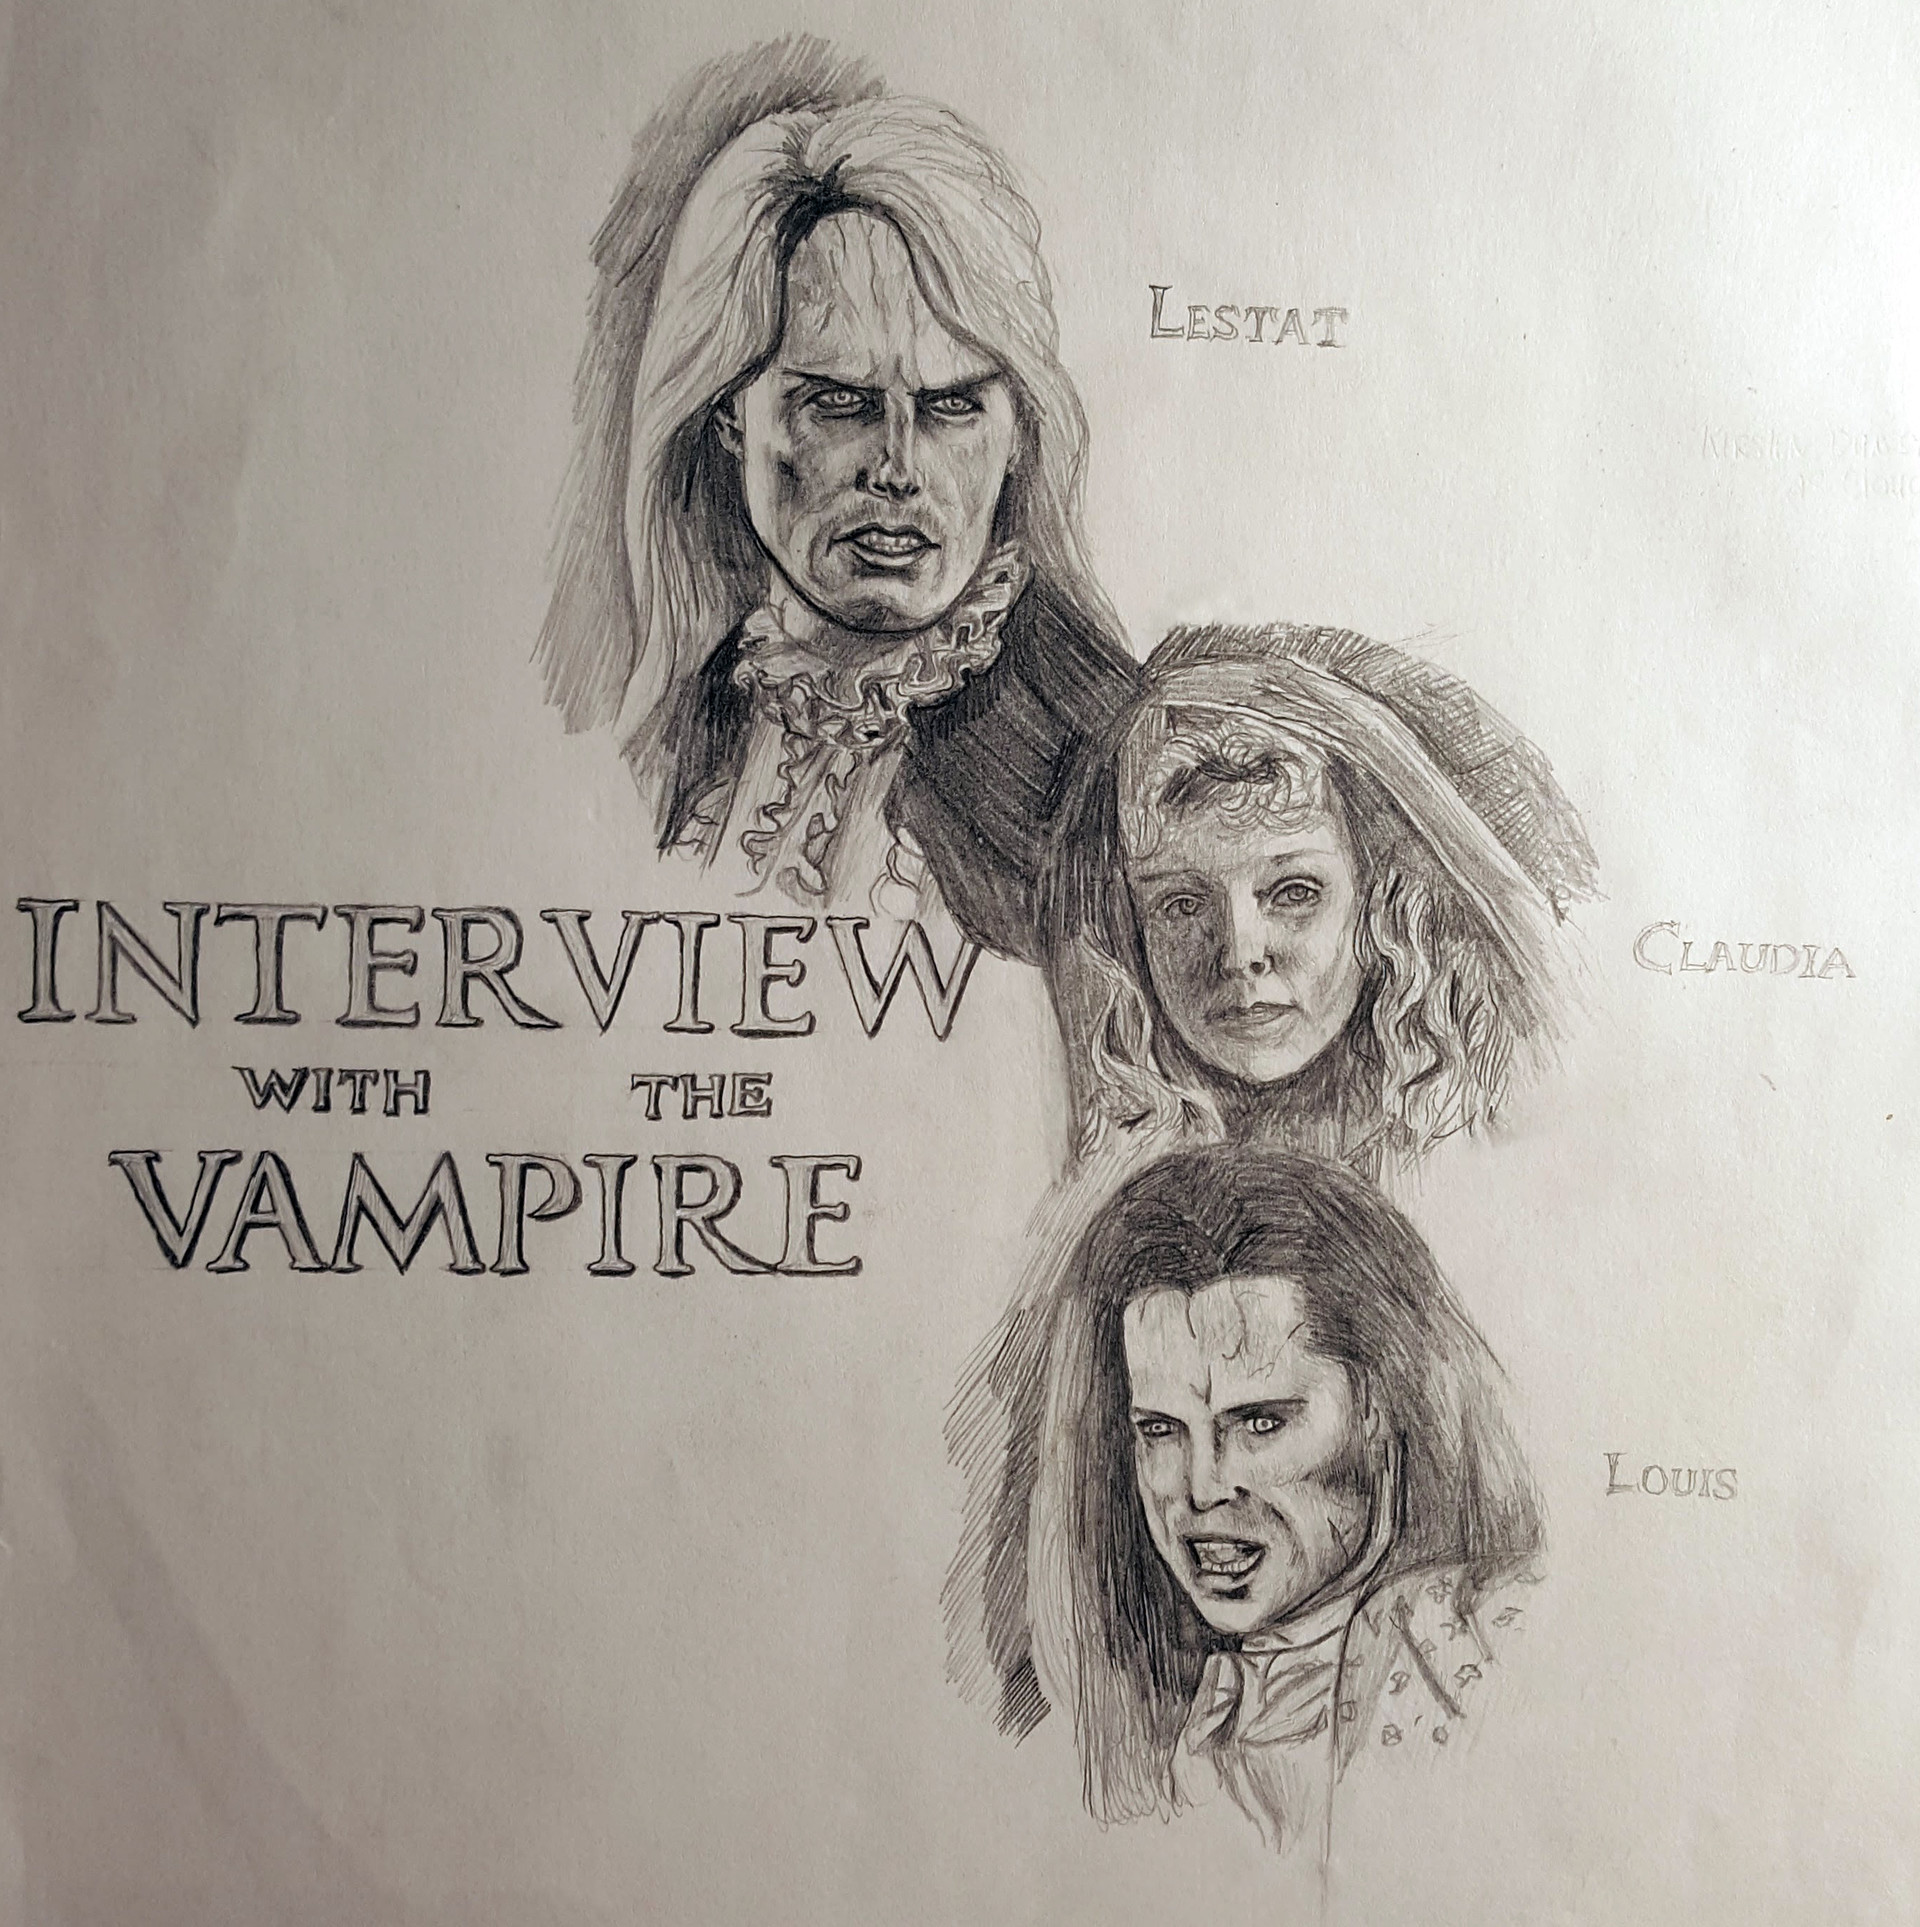 Benni amato interview with the vampire